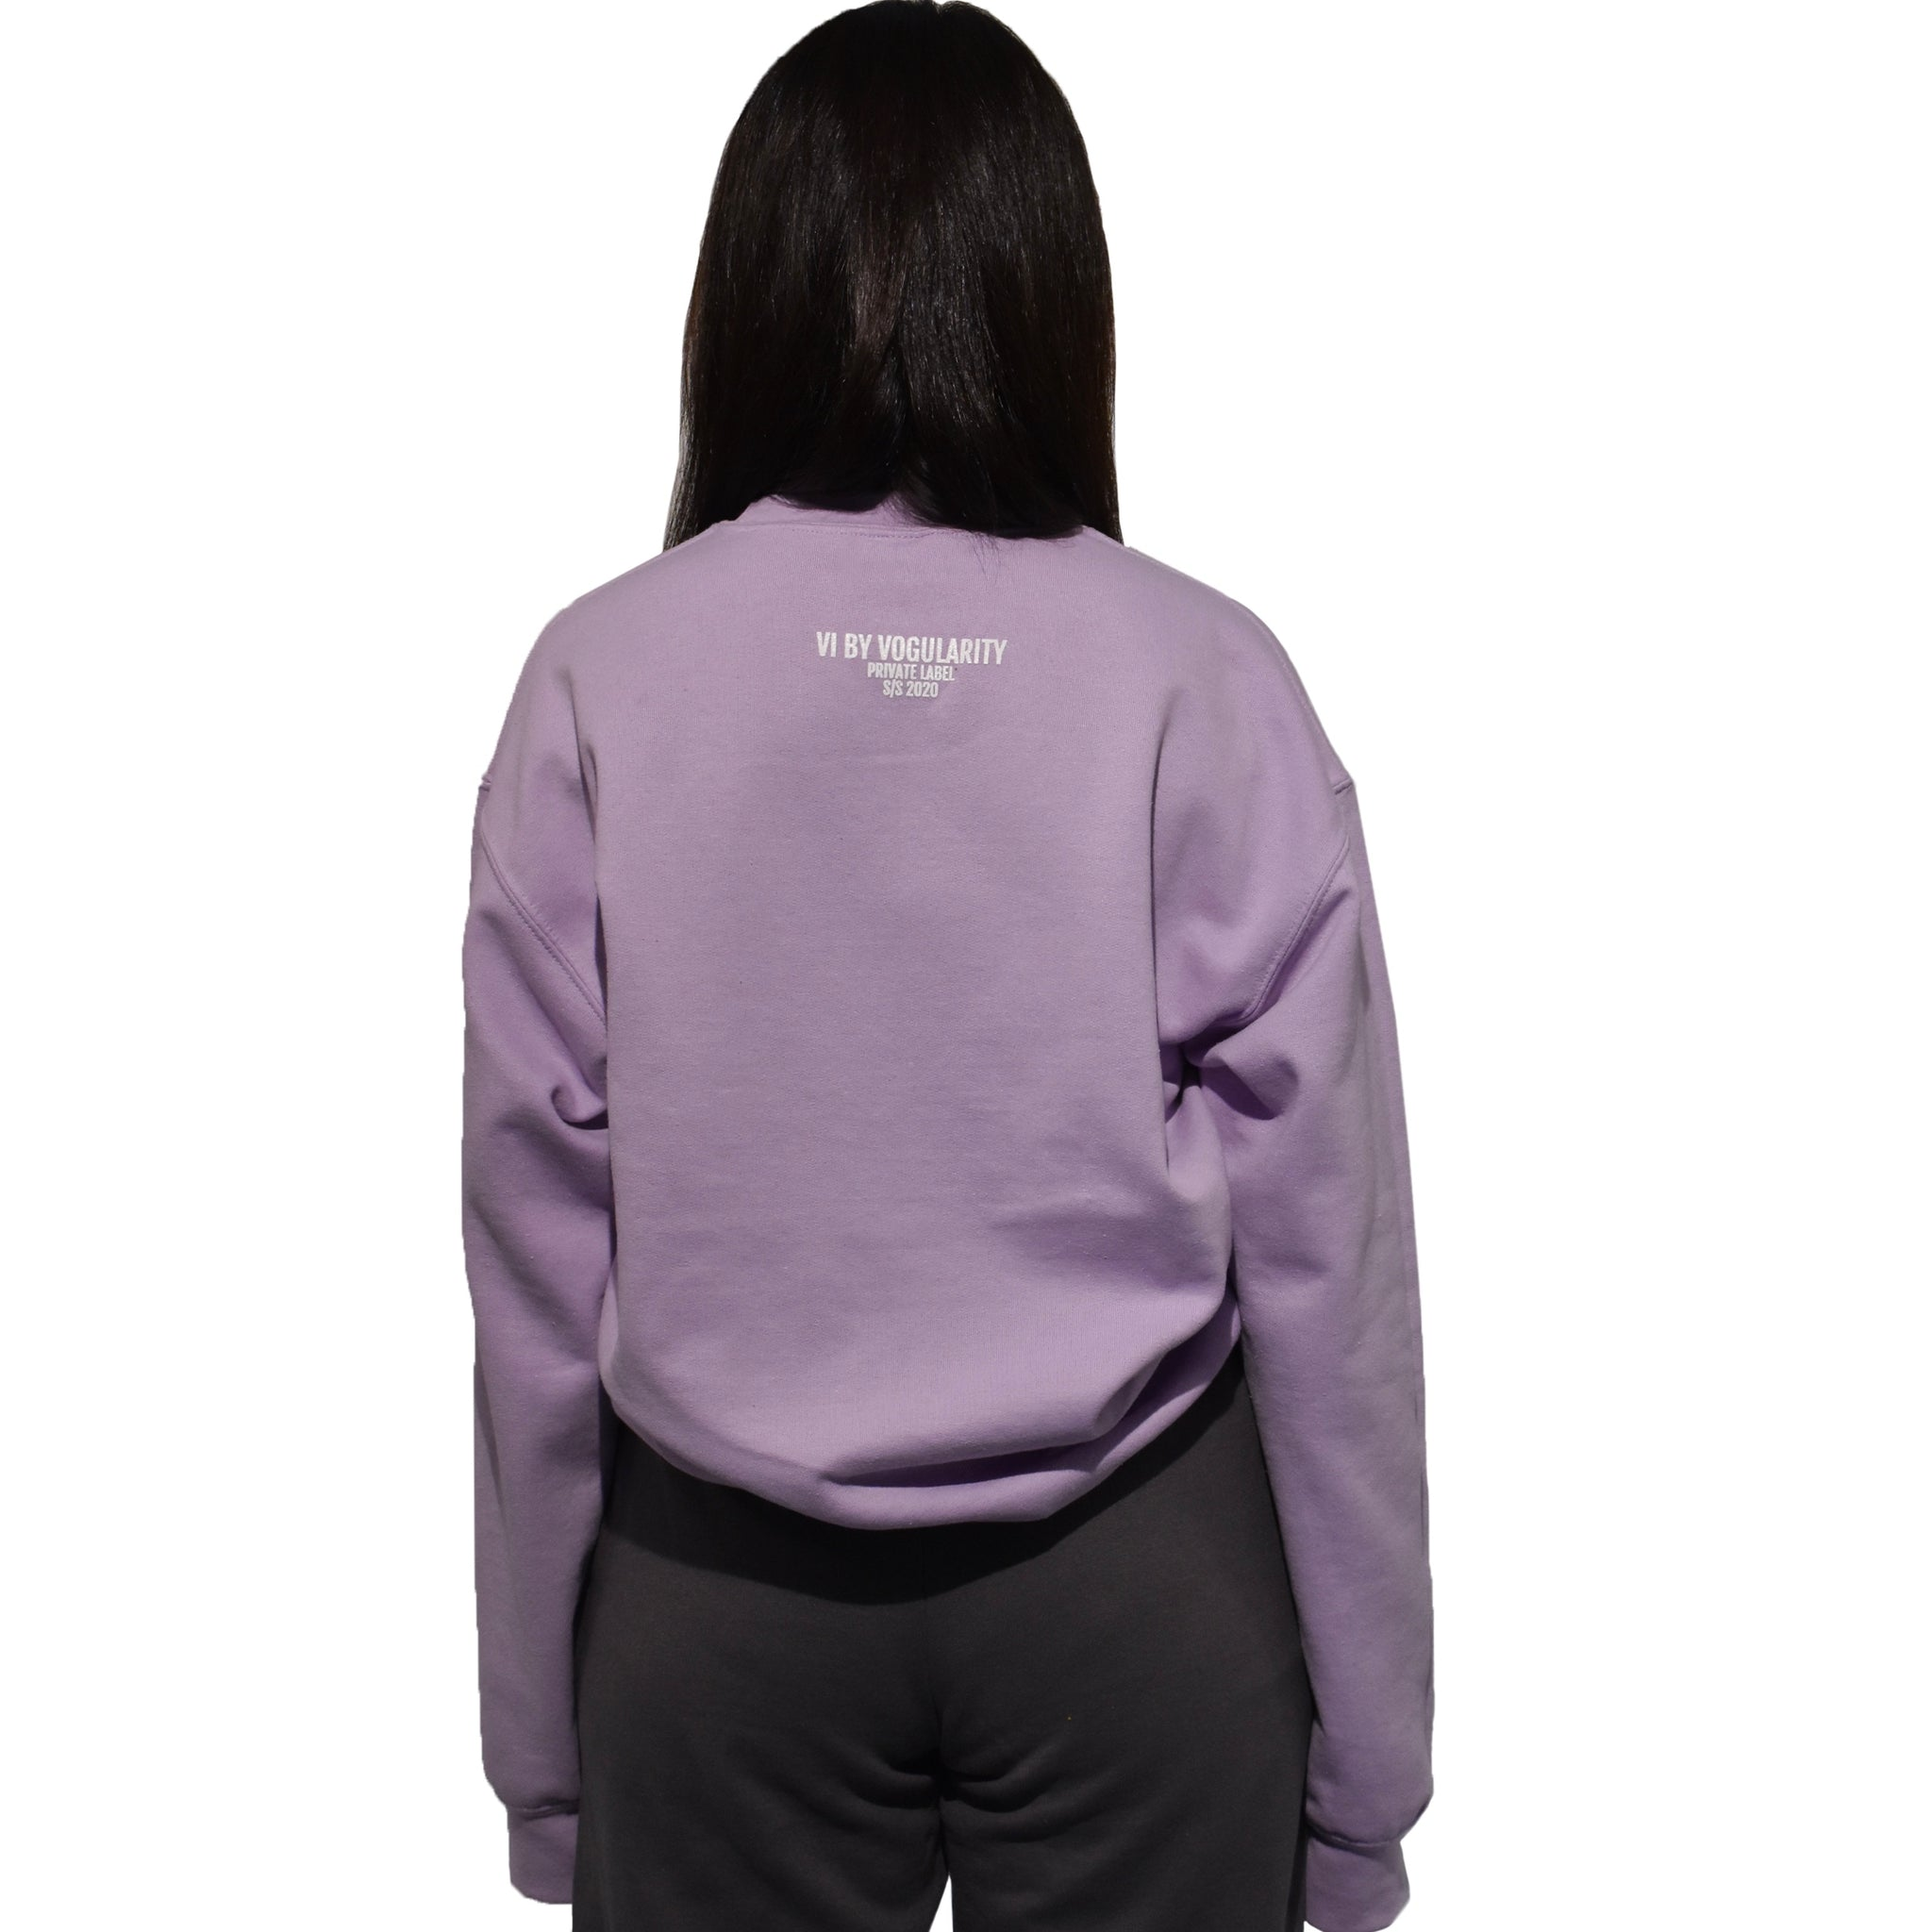 Basic Lilac Sweatshirt